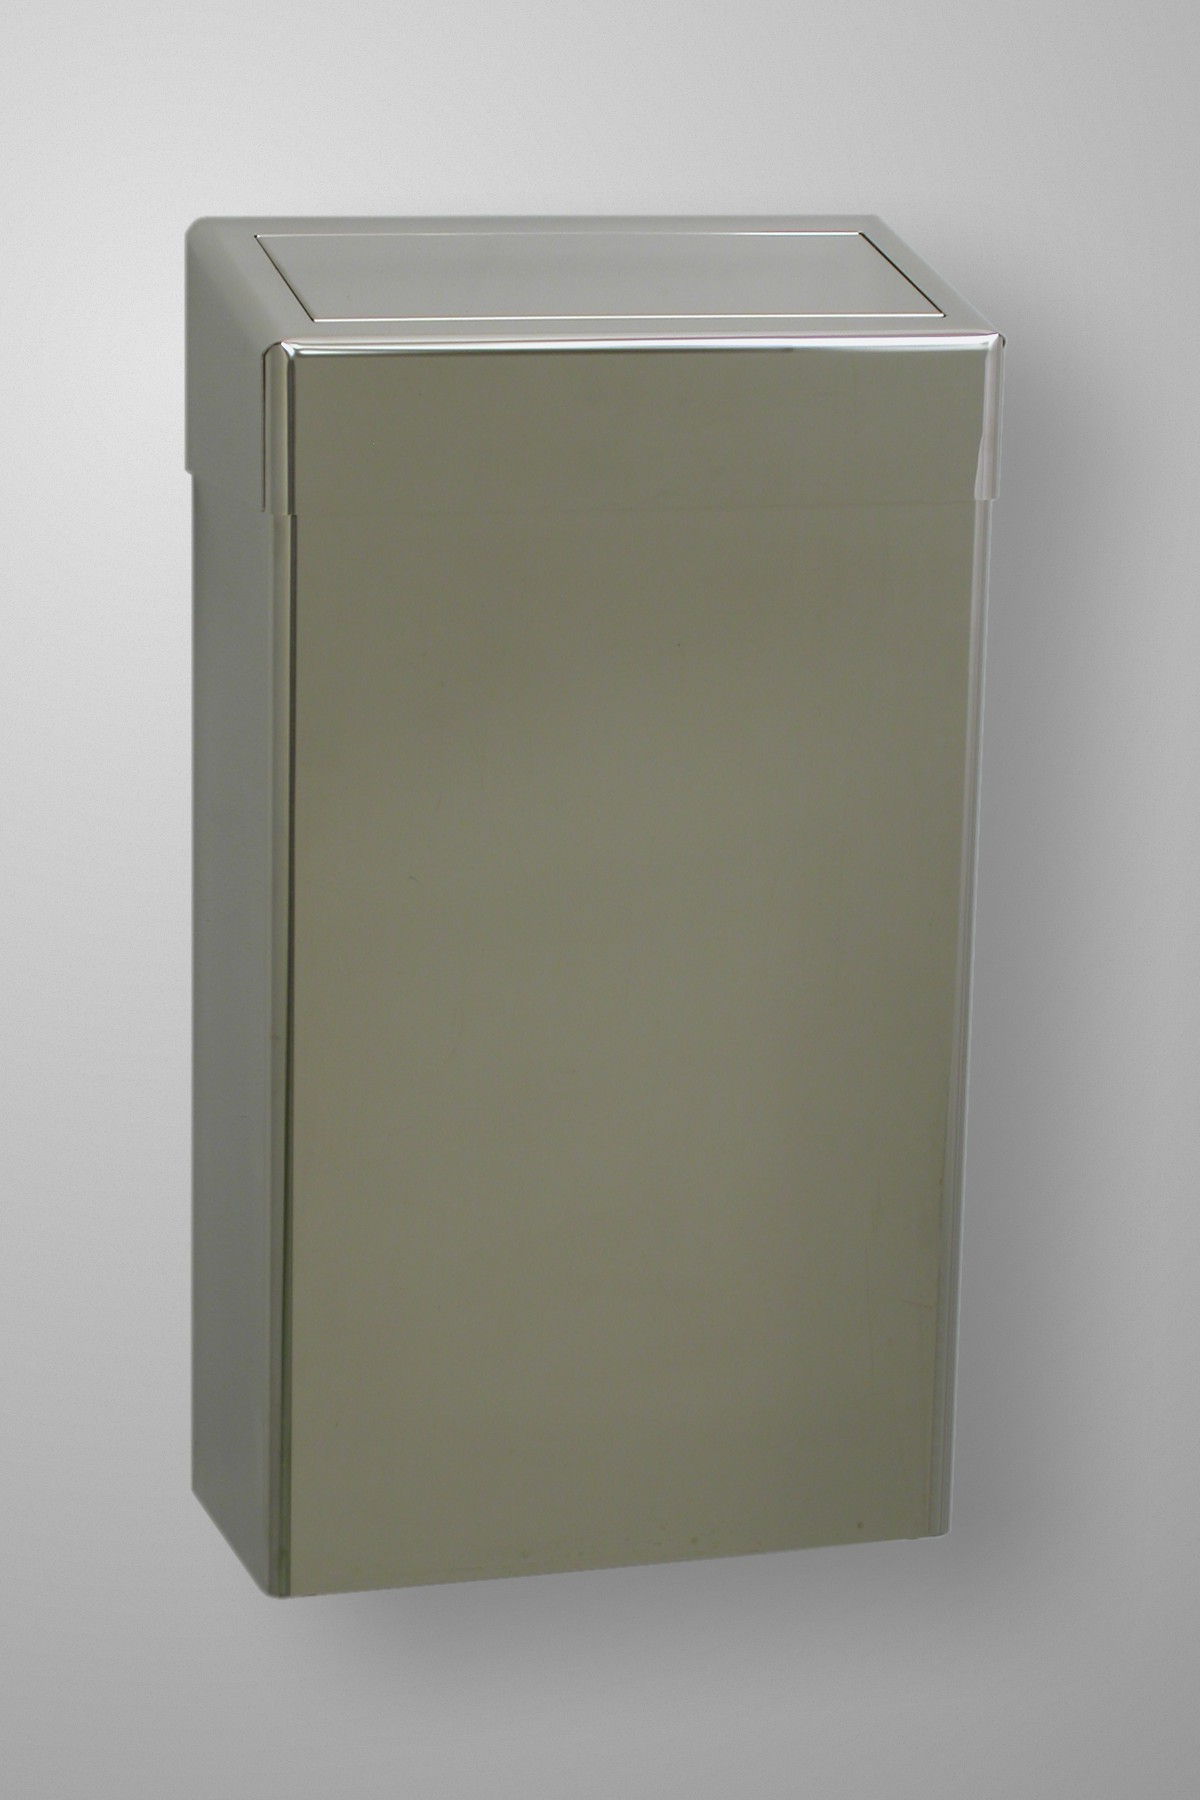 STAINLESS STEEL SLIM LINE WASTE BIN